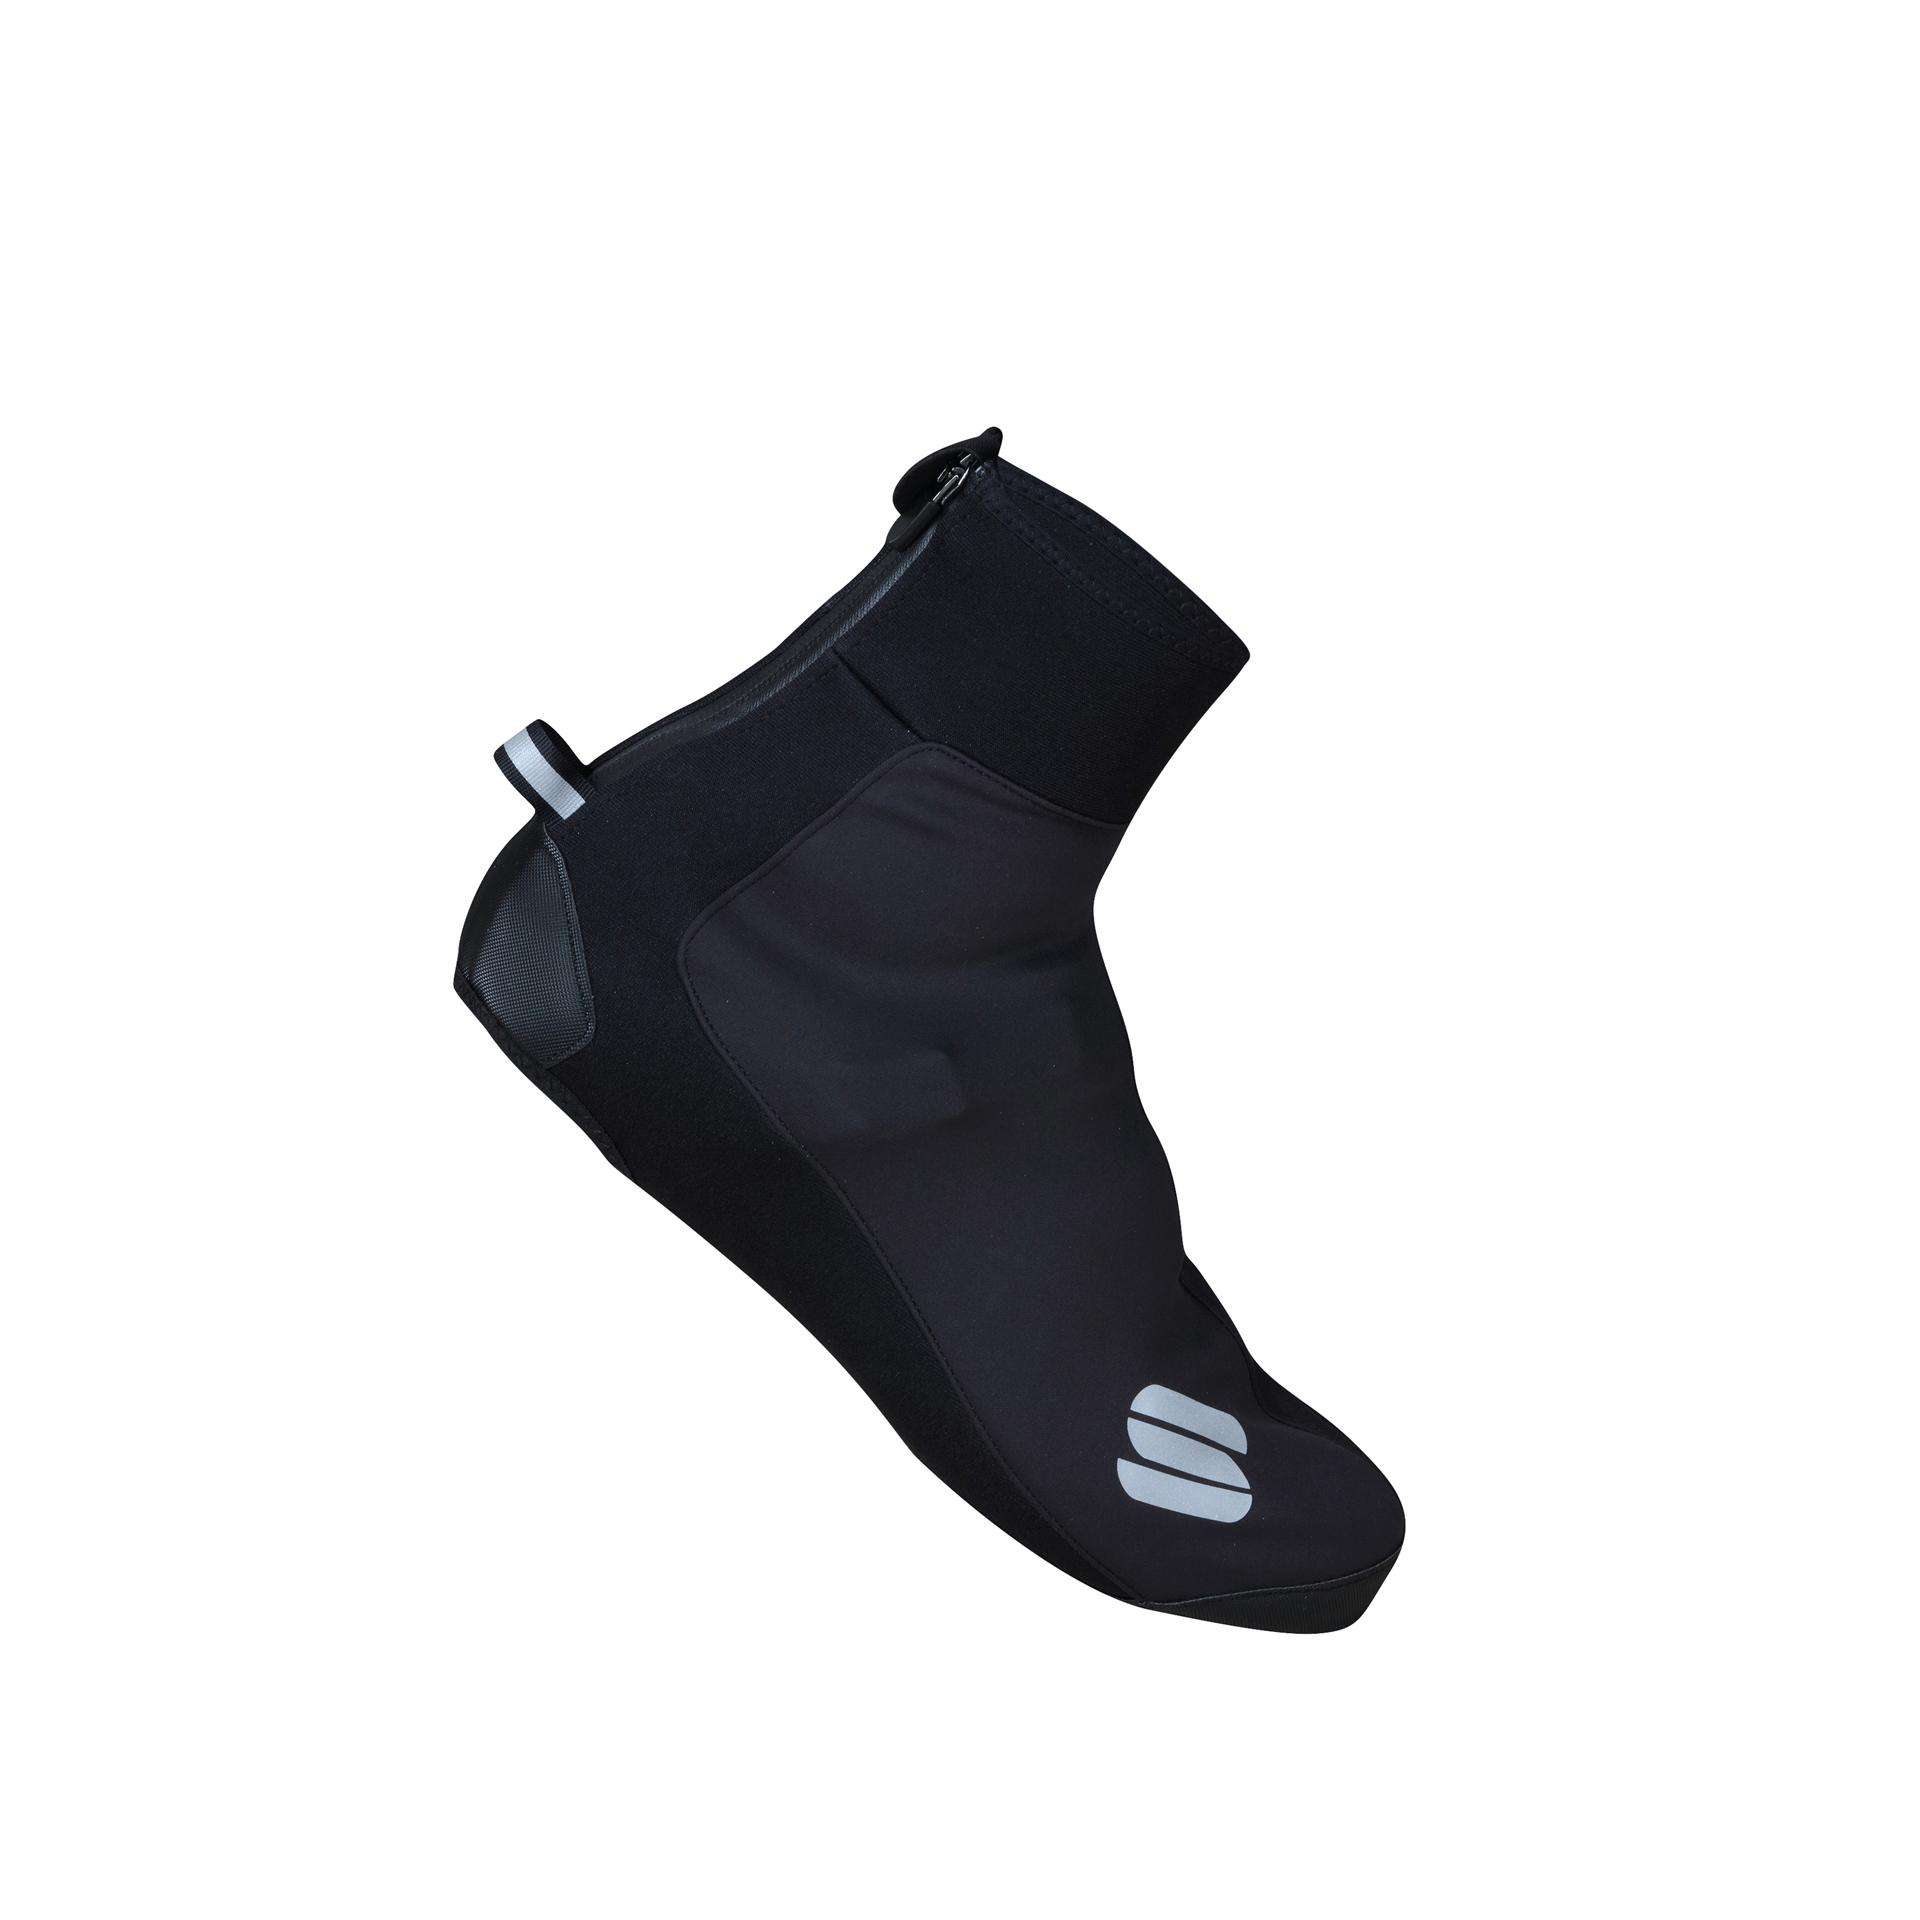 Sportful Overschoenen Heren Zwart / Roubaix Thermal Bootie-Black